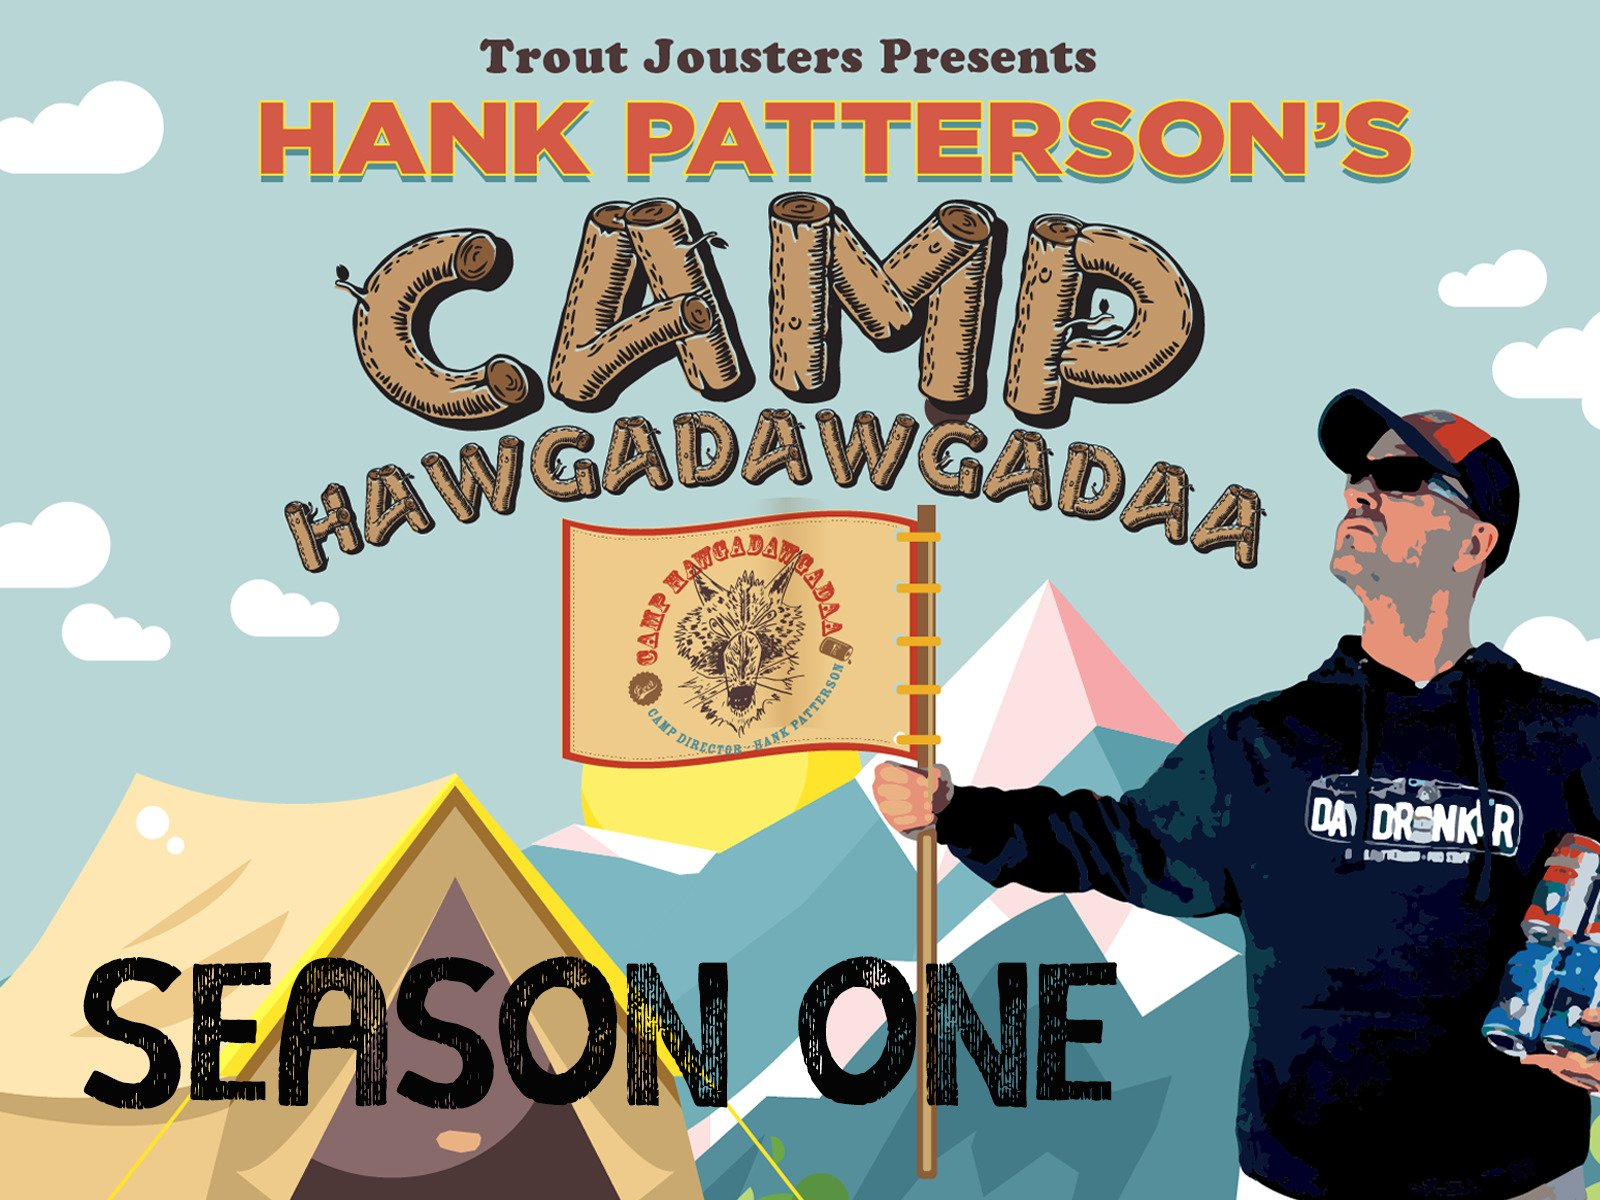 Hank Patterson's Camp Hawgadawgadaa - Season 1